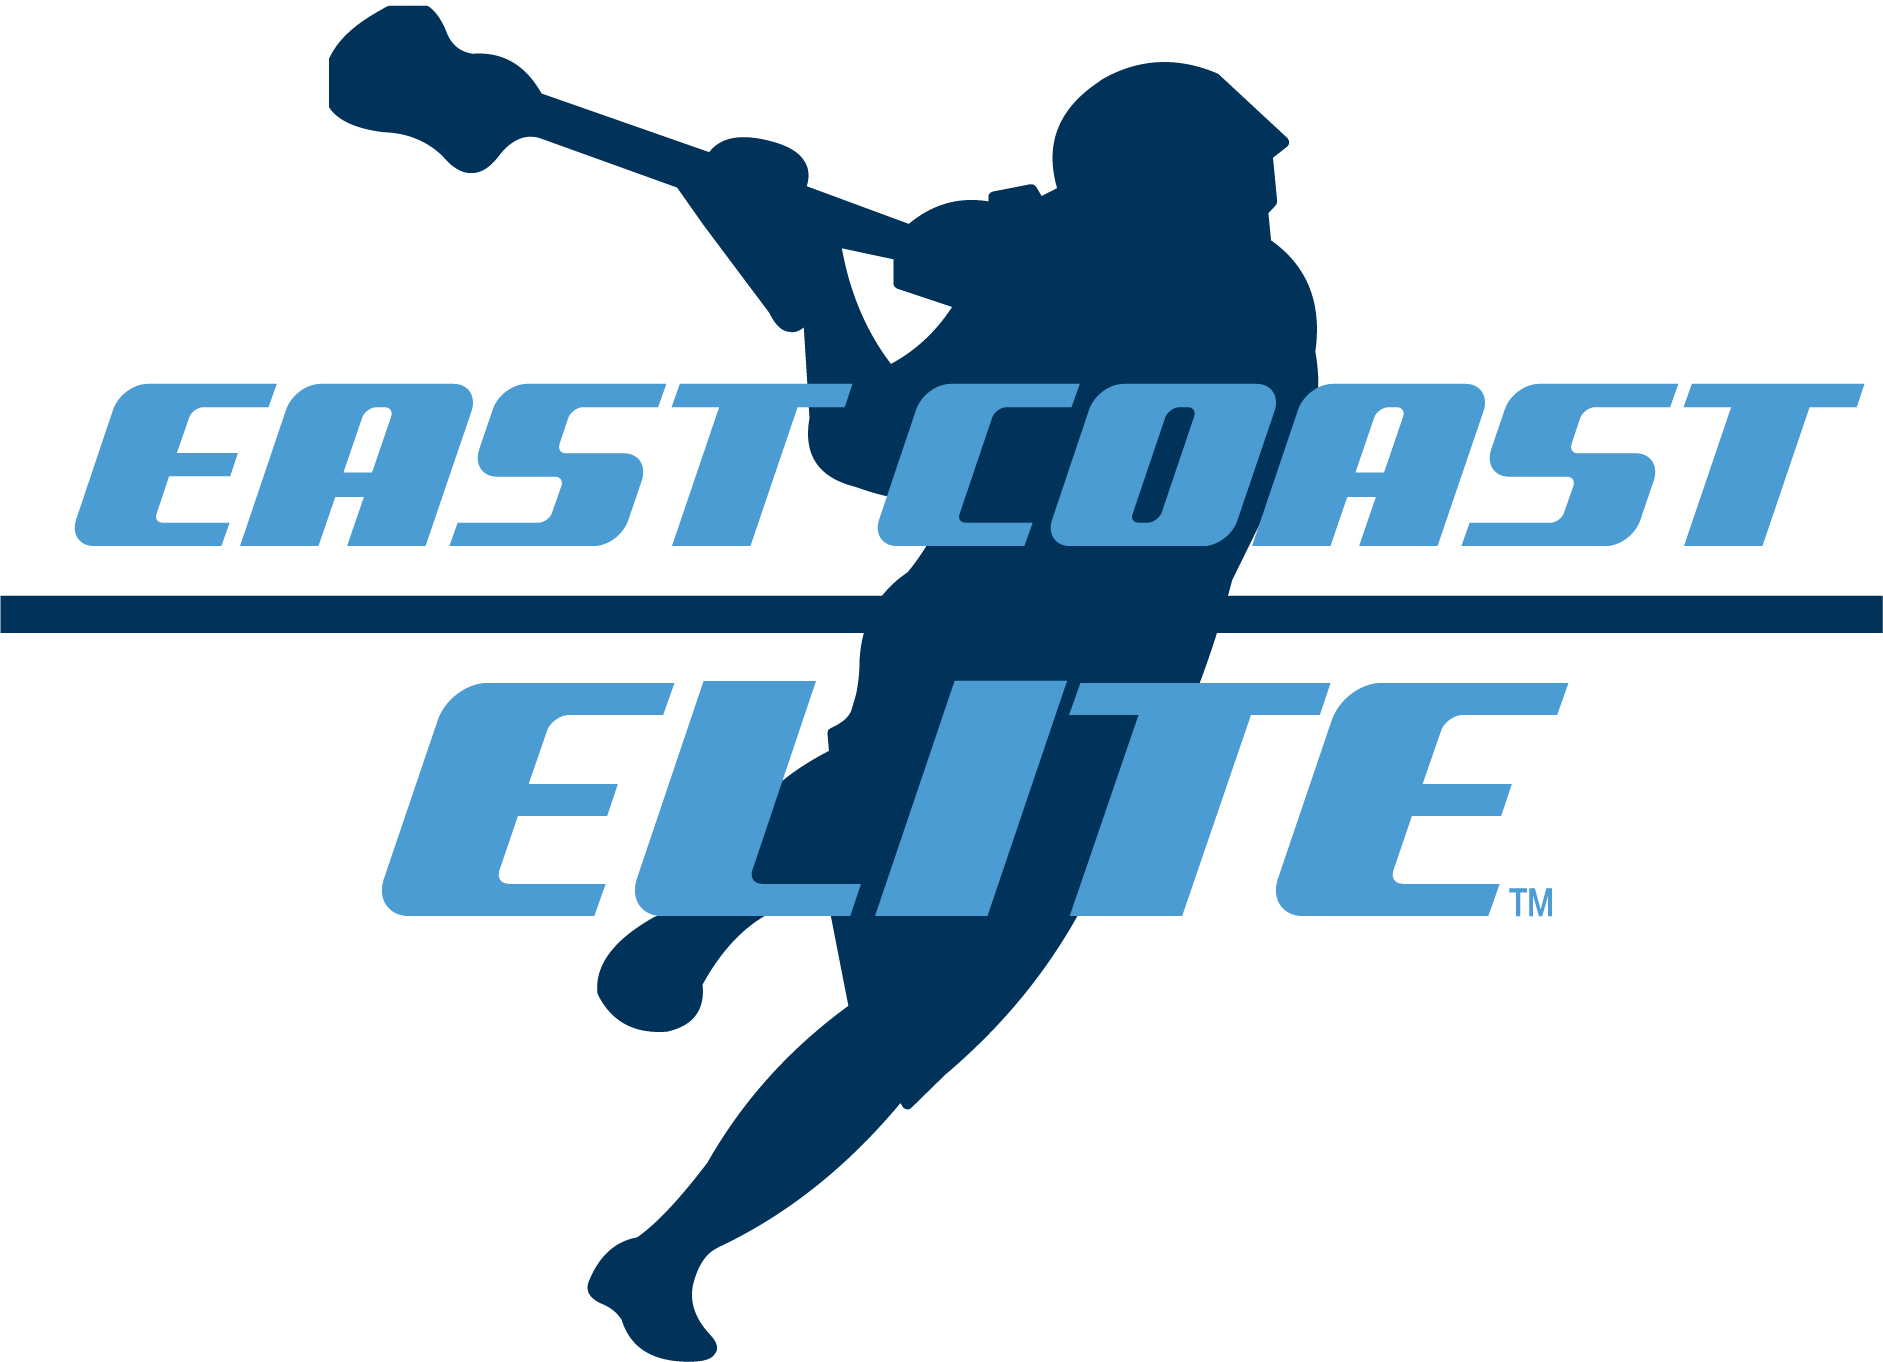 East Coast Elite